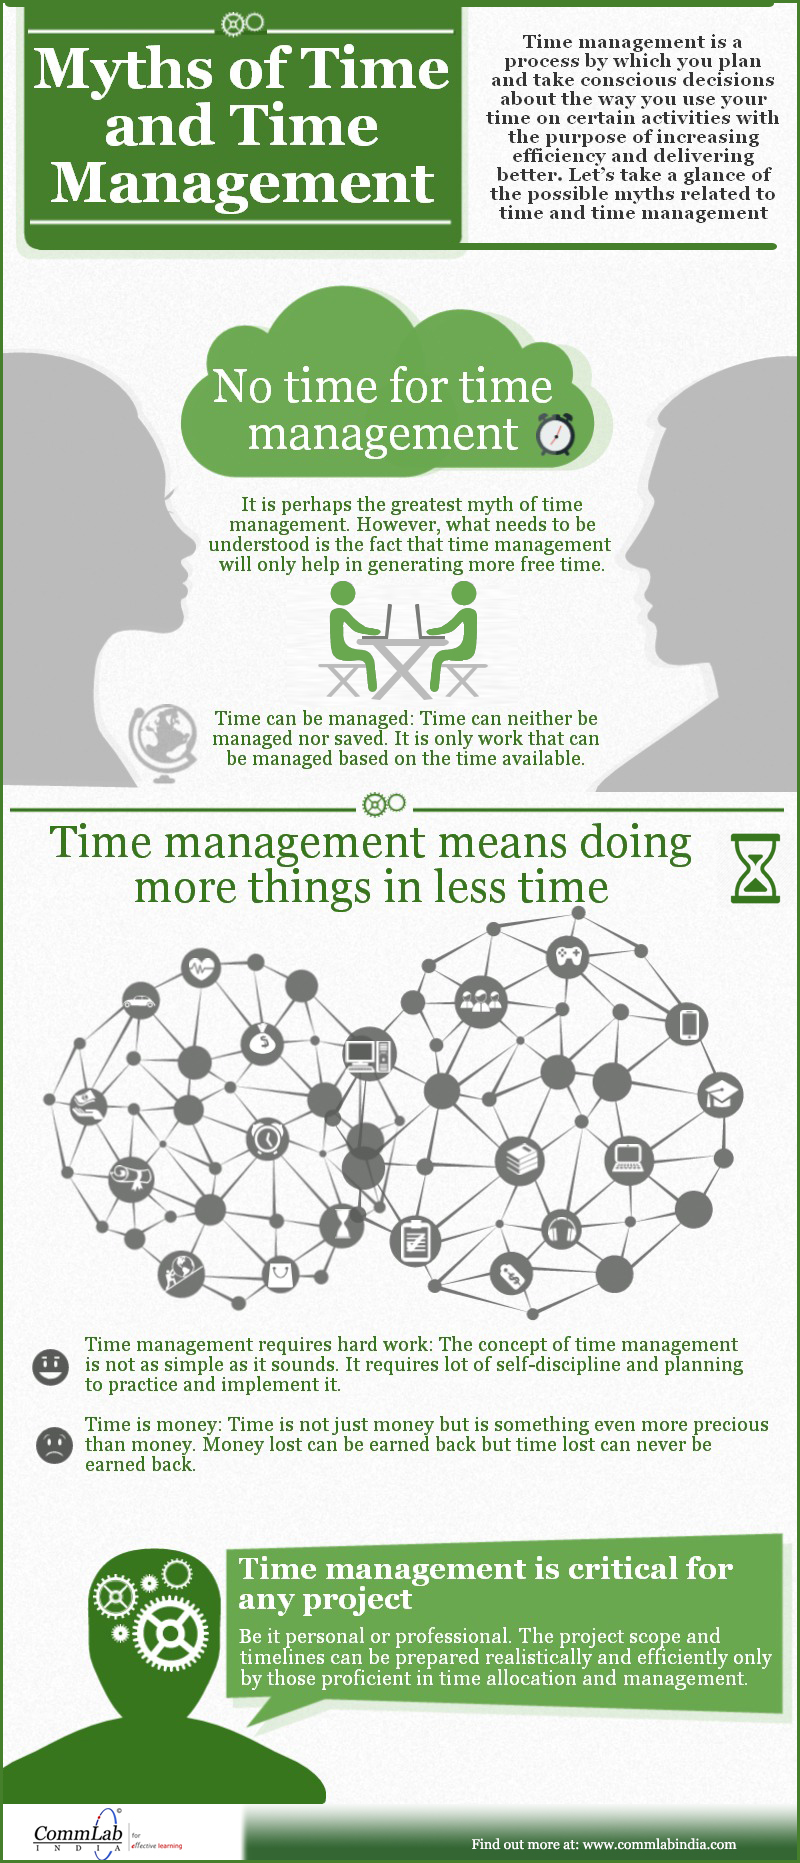 Myths of Time and Time Management – An Infographic